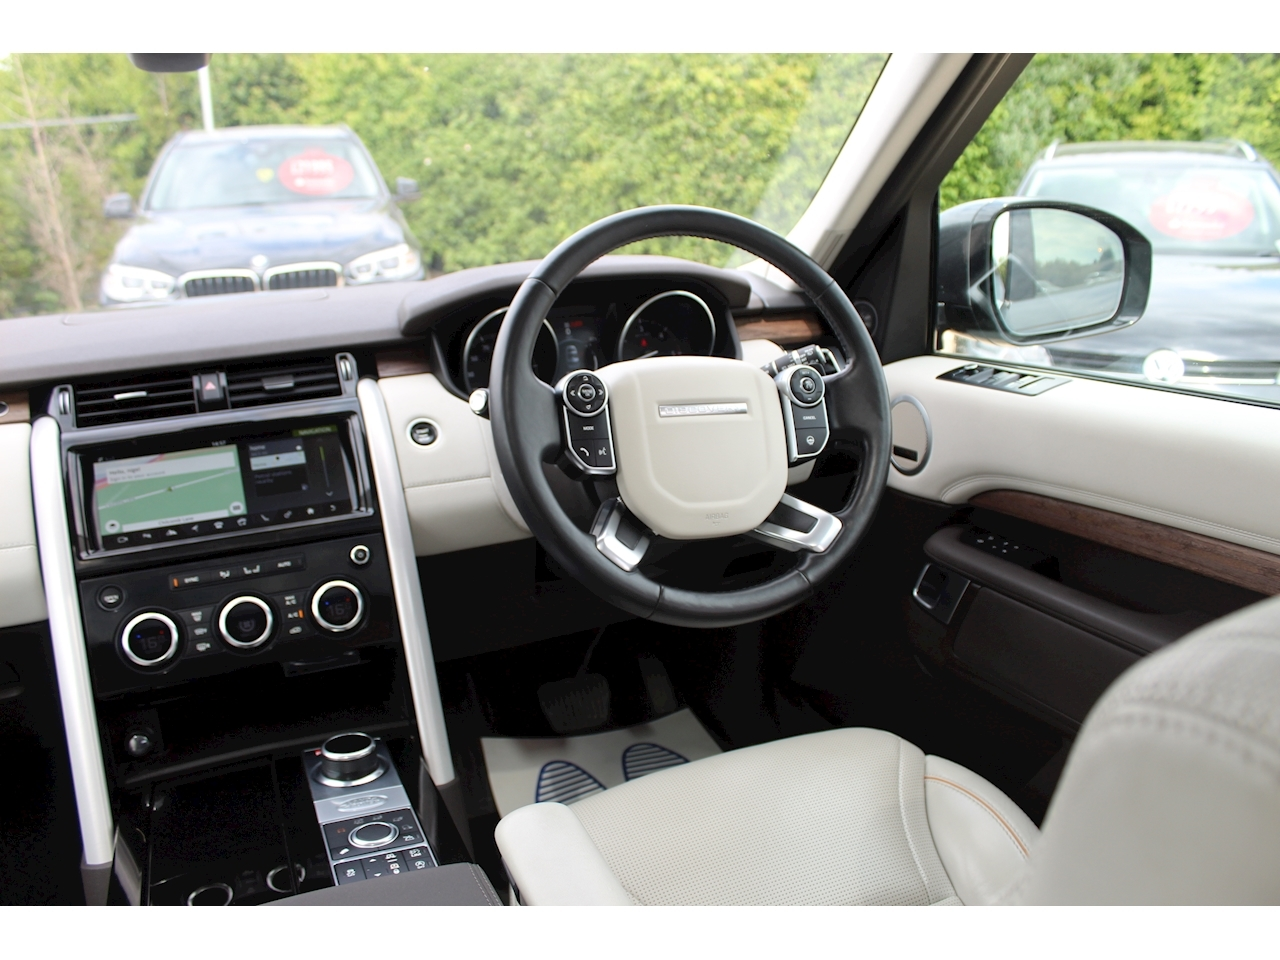 Land Rover Discovery Td6 Hse Estate 3.0 Automatic Diesel